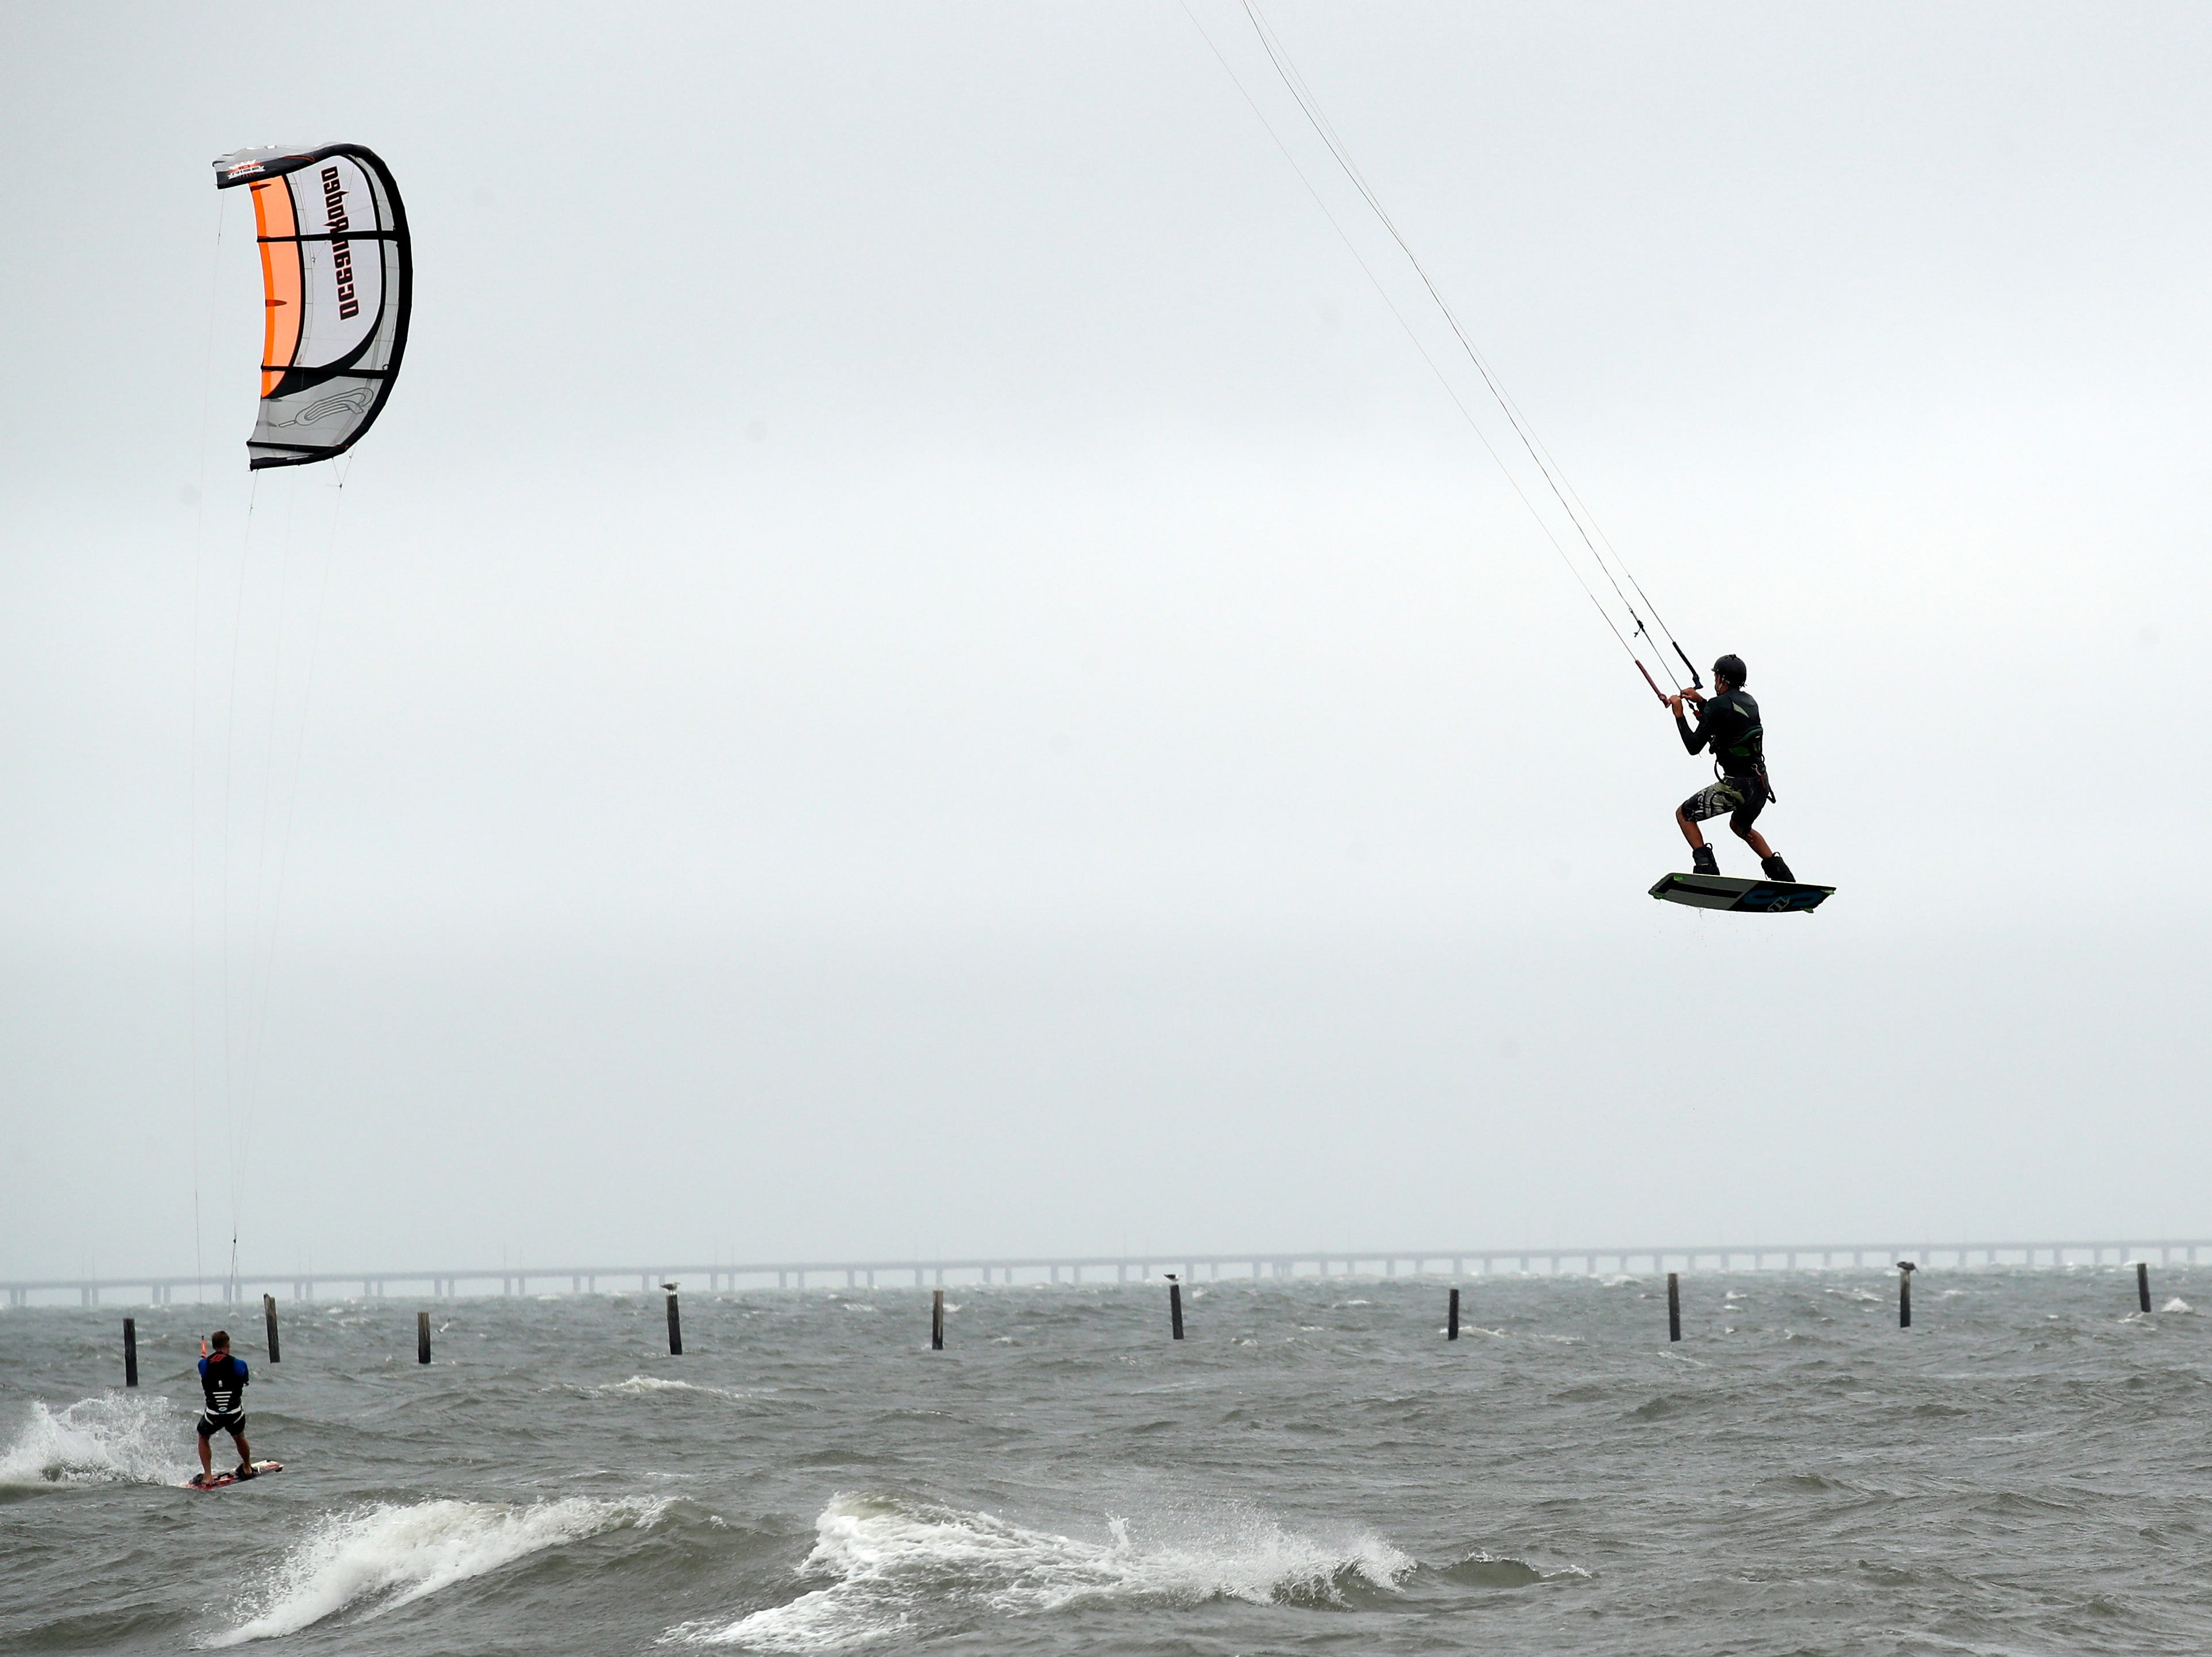 Bob Bowman, from Virginia Beach, Va., gets some air as he kiteboards, Thursday, Sept. 13, 2018, in Virginia Beach, Va., as Hurricane Florence moves towards the eastern shore.